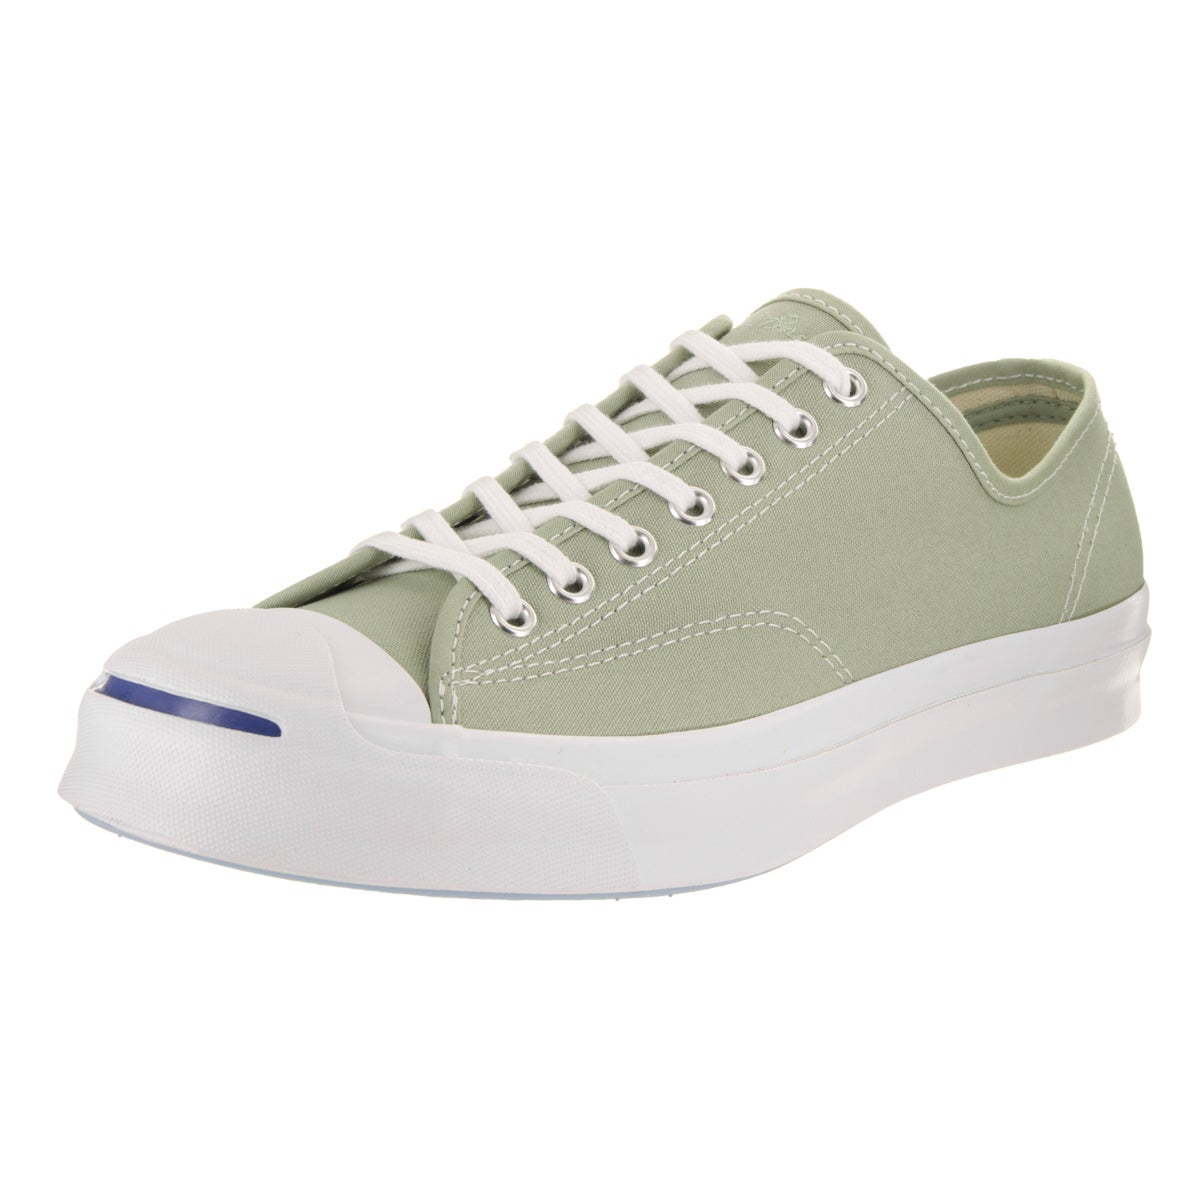 7a1ae30a83cc Shop Converse Unisex Jack Purcell Signature Ox Casual Shoe - Free ...